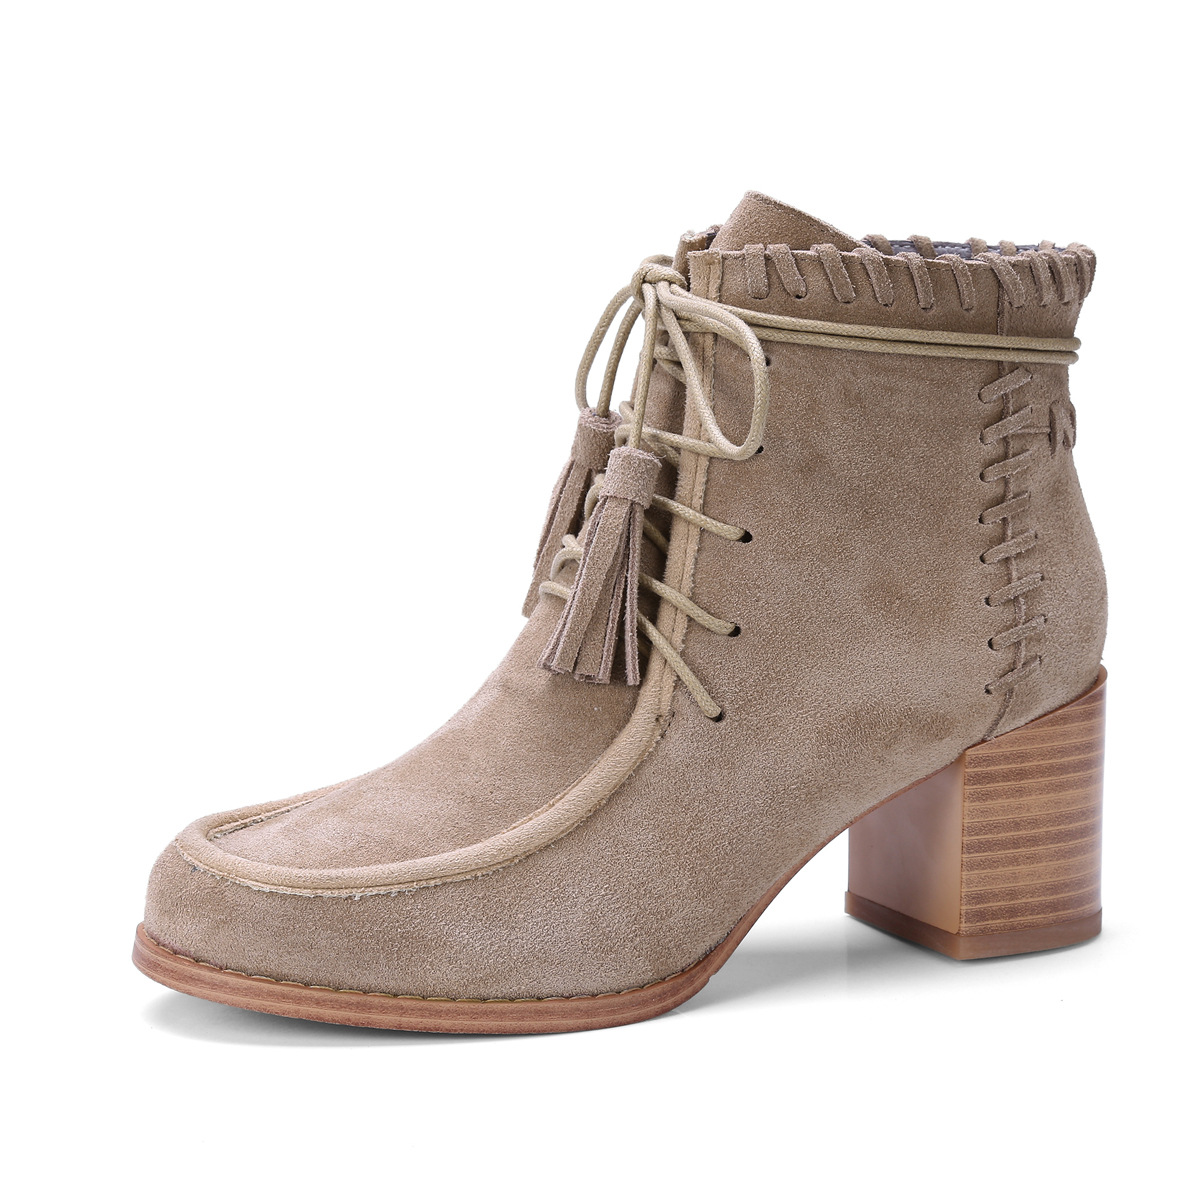 Women Lace up Suede High Heels Snow Ankle Martin Boots Bohemia Fringe Chunky Heels Round Toe Short Booties Nubuck Leather Shoes women irresistible suede color patchwork ankle boots round toe chunky heels classic side zip short boots new arrival this year